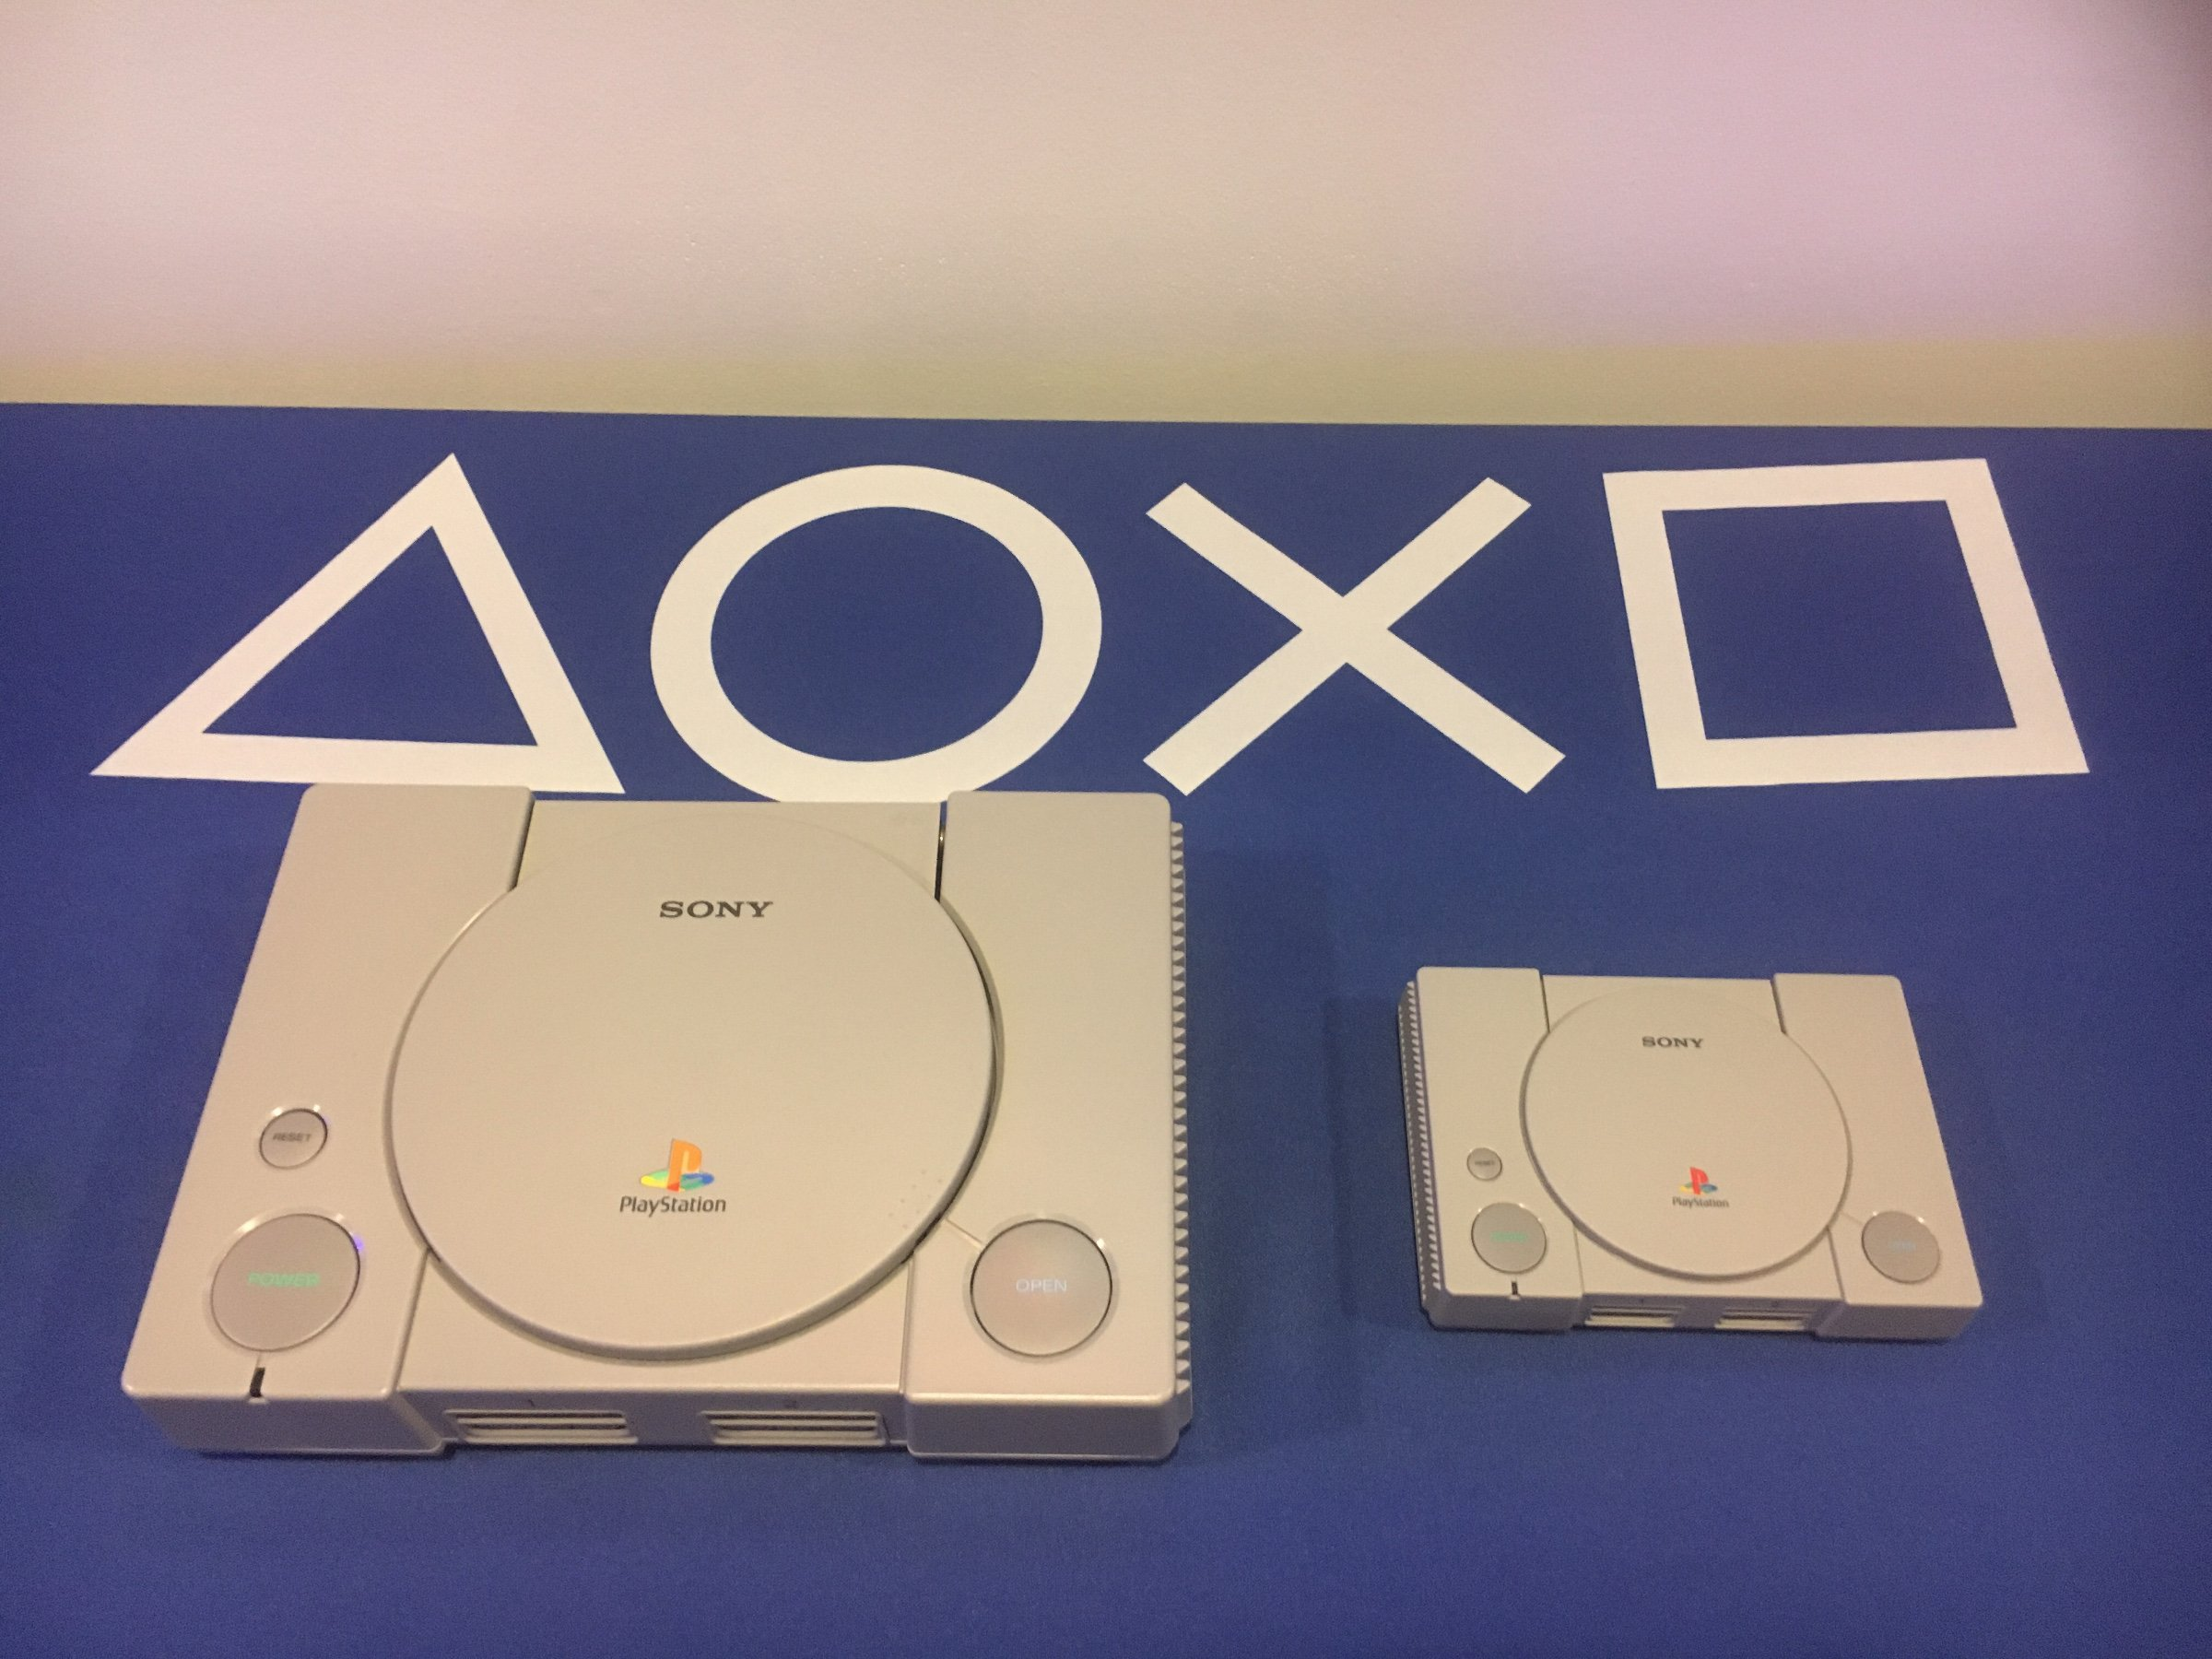 Sony using open source emulator for PlayStation Classic plug-and-play